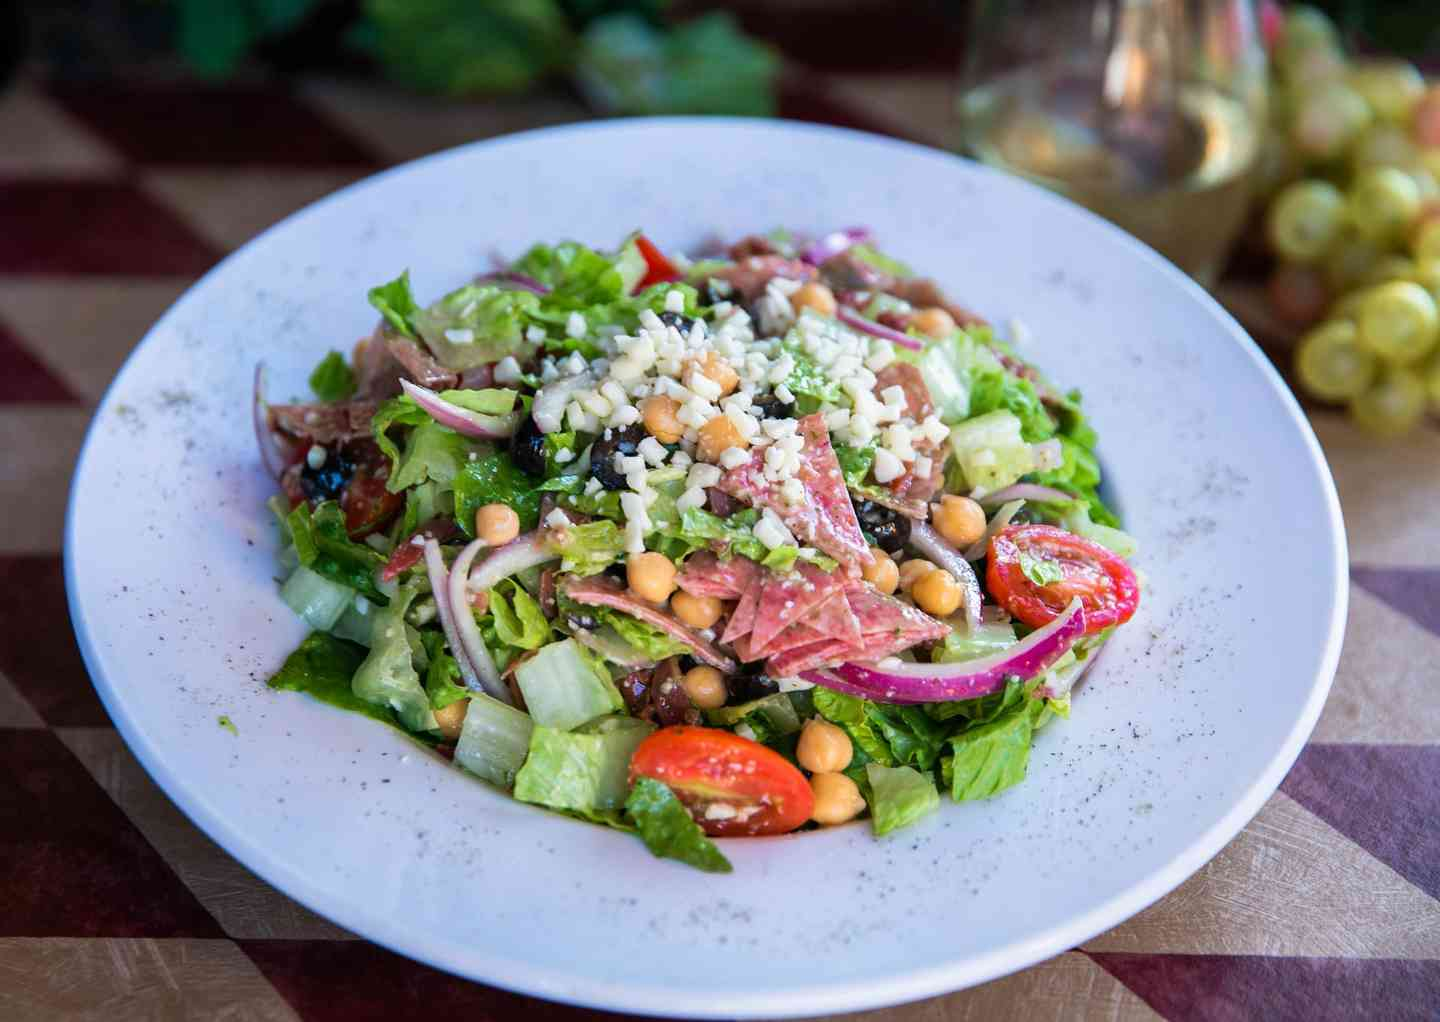 Tuscano's Chopped Salad